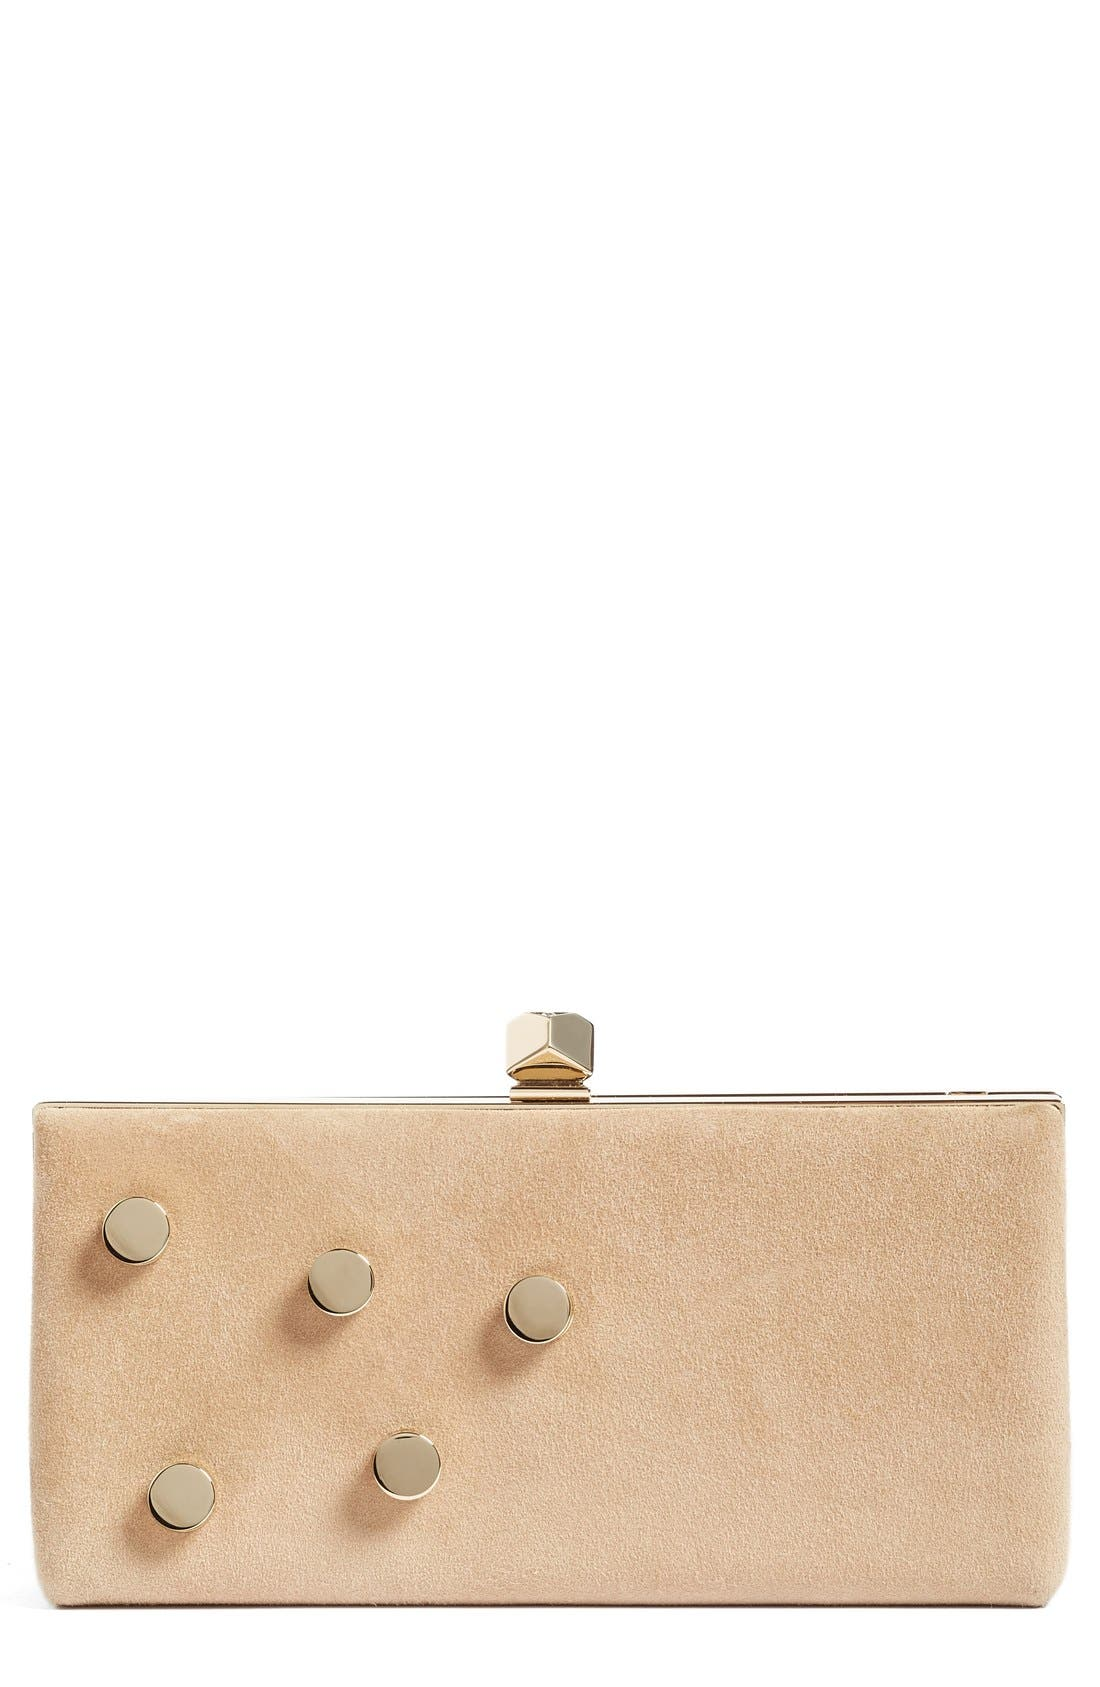 Jimmy Choo Jewelled Collection Celeste Buttons Suede Clutch